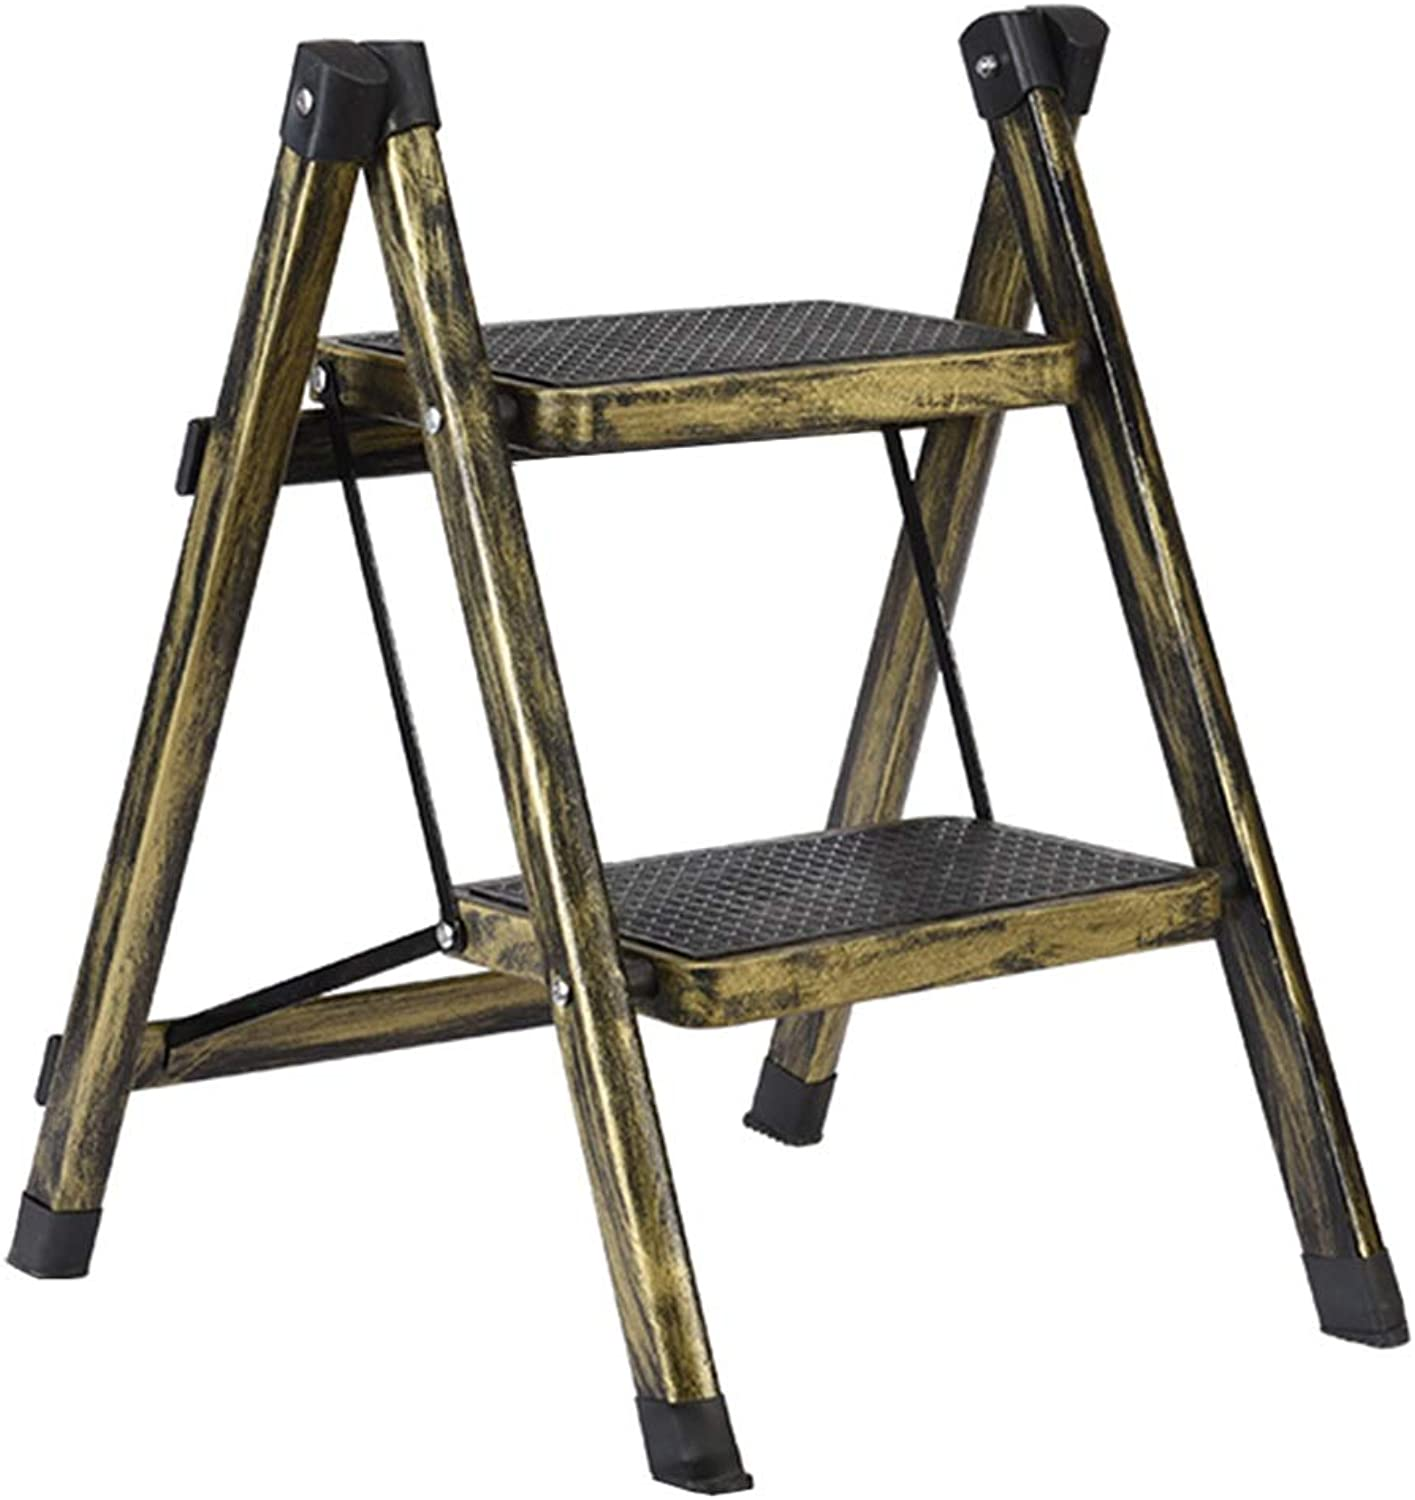 ZHAOYONGLI Stool Modern Fashion Folding Ladder Stool Two-Step Bench Stool Multi-Function Home Change shoes Bench Creative Solid Durable Long Lasting (color   Brass, Size   40  51  58cm)